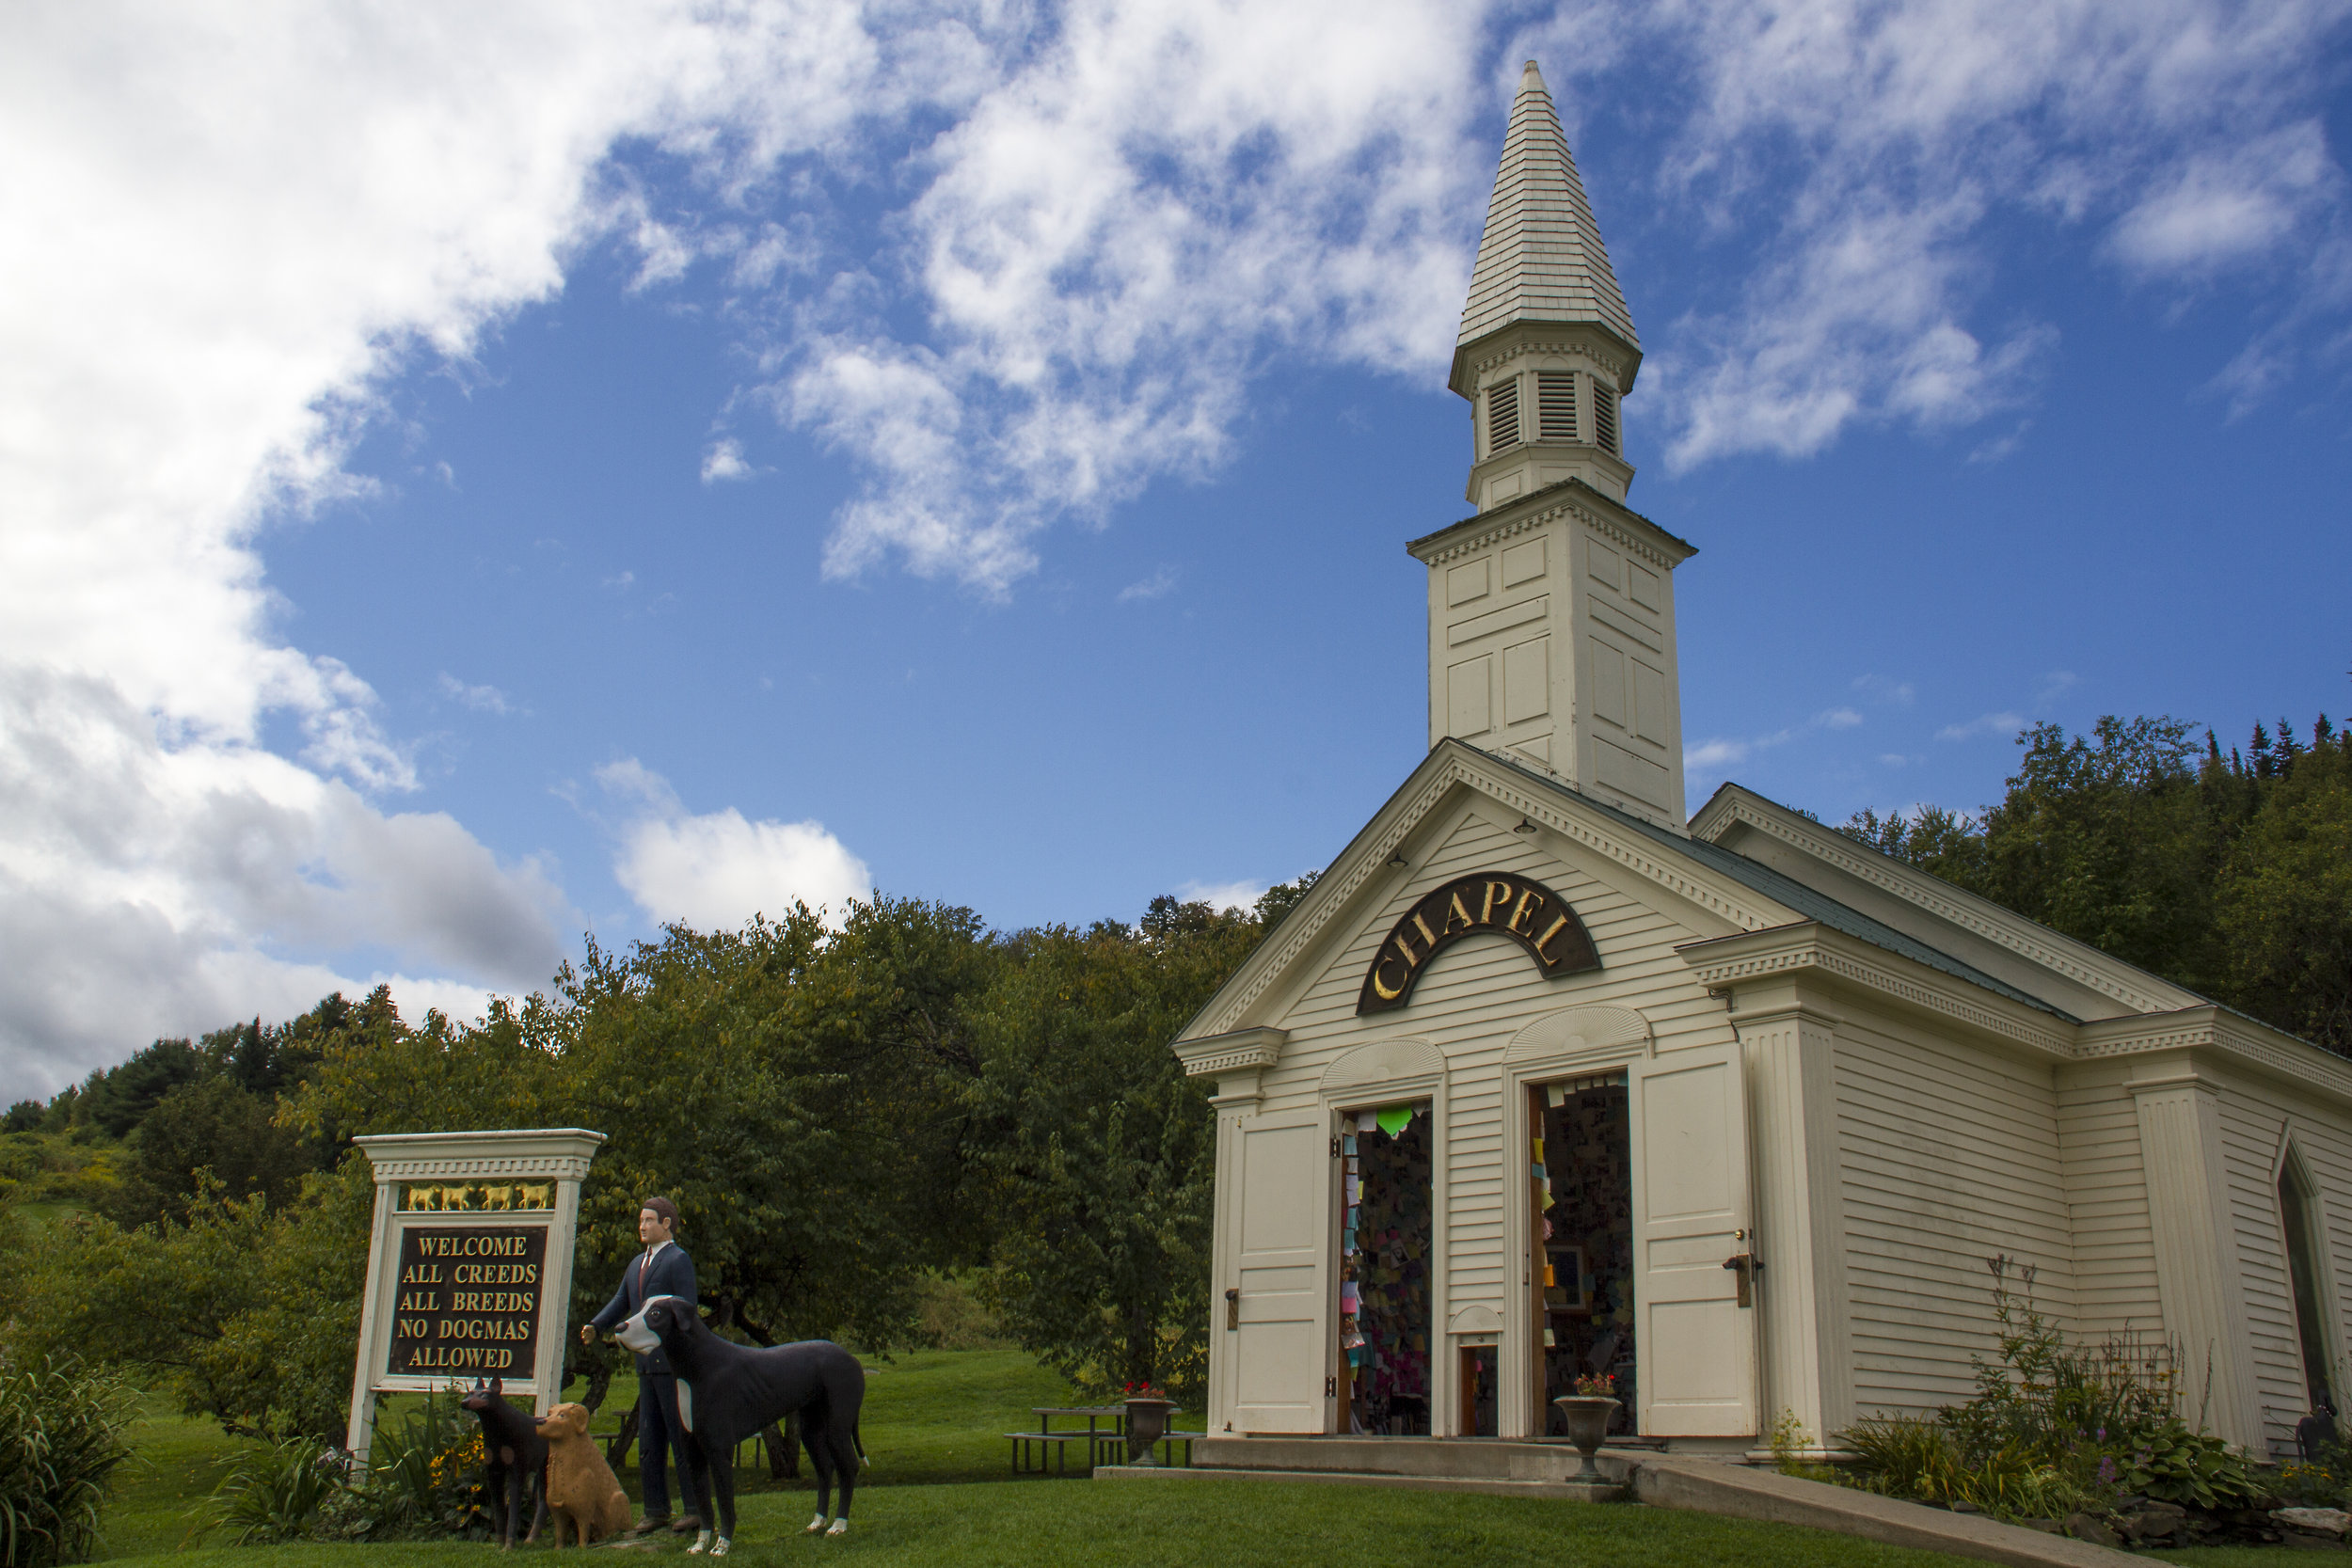 The Chapel stands on the 150 acre property in the Northeast Kingdom of Vermont, where people can connect with nature and their dogs.